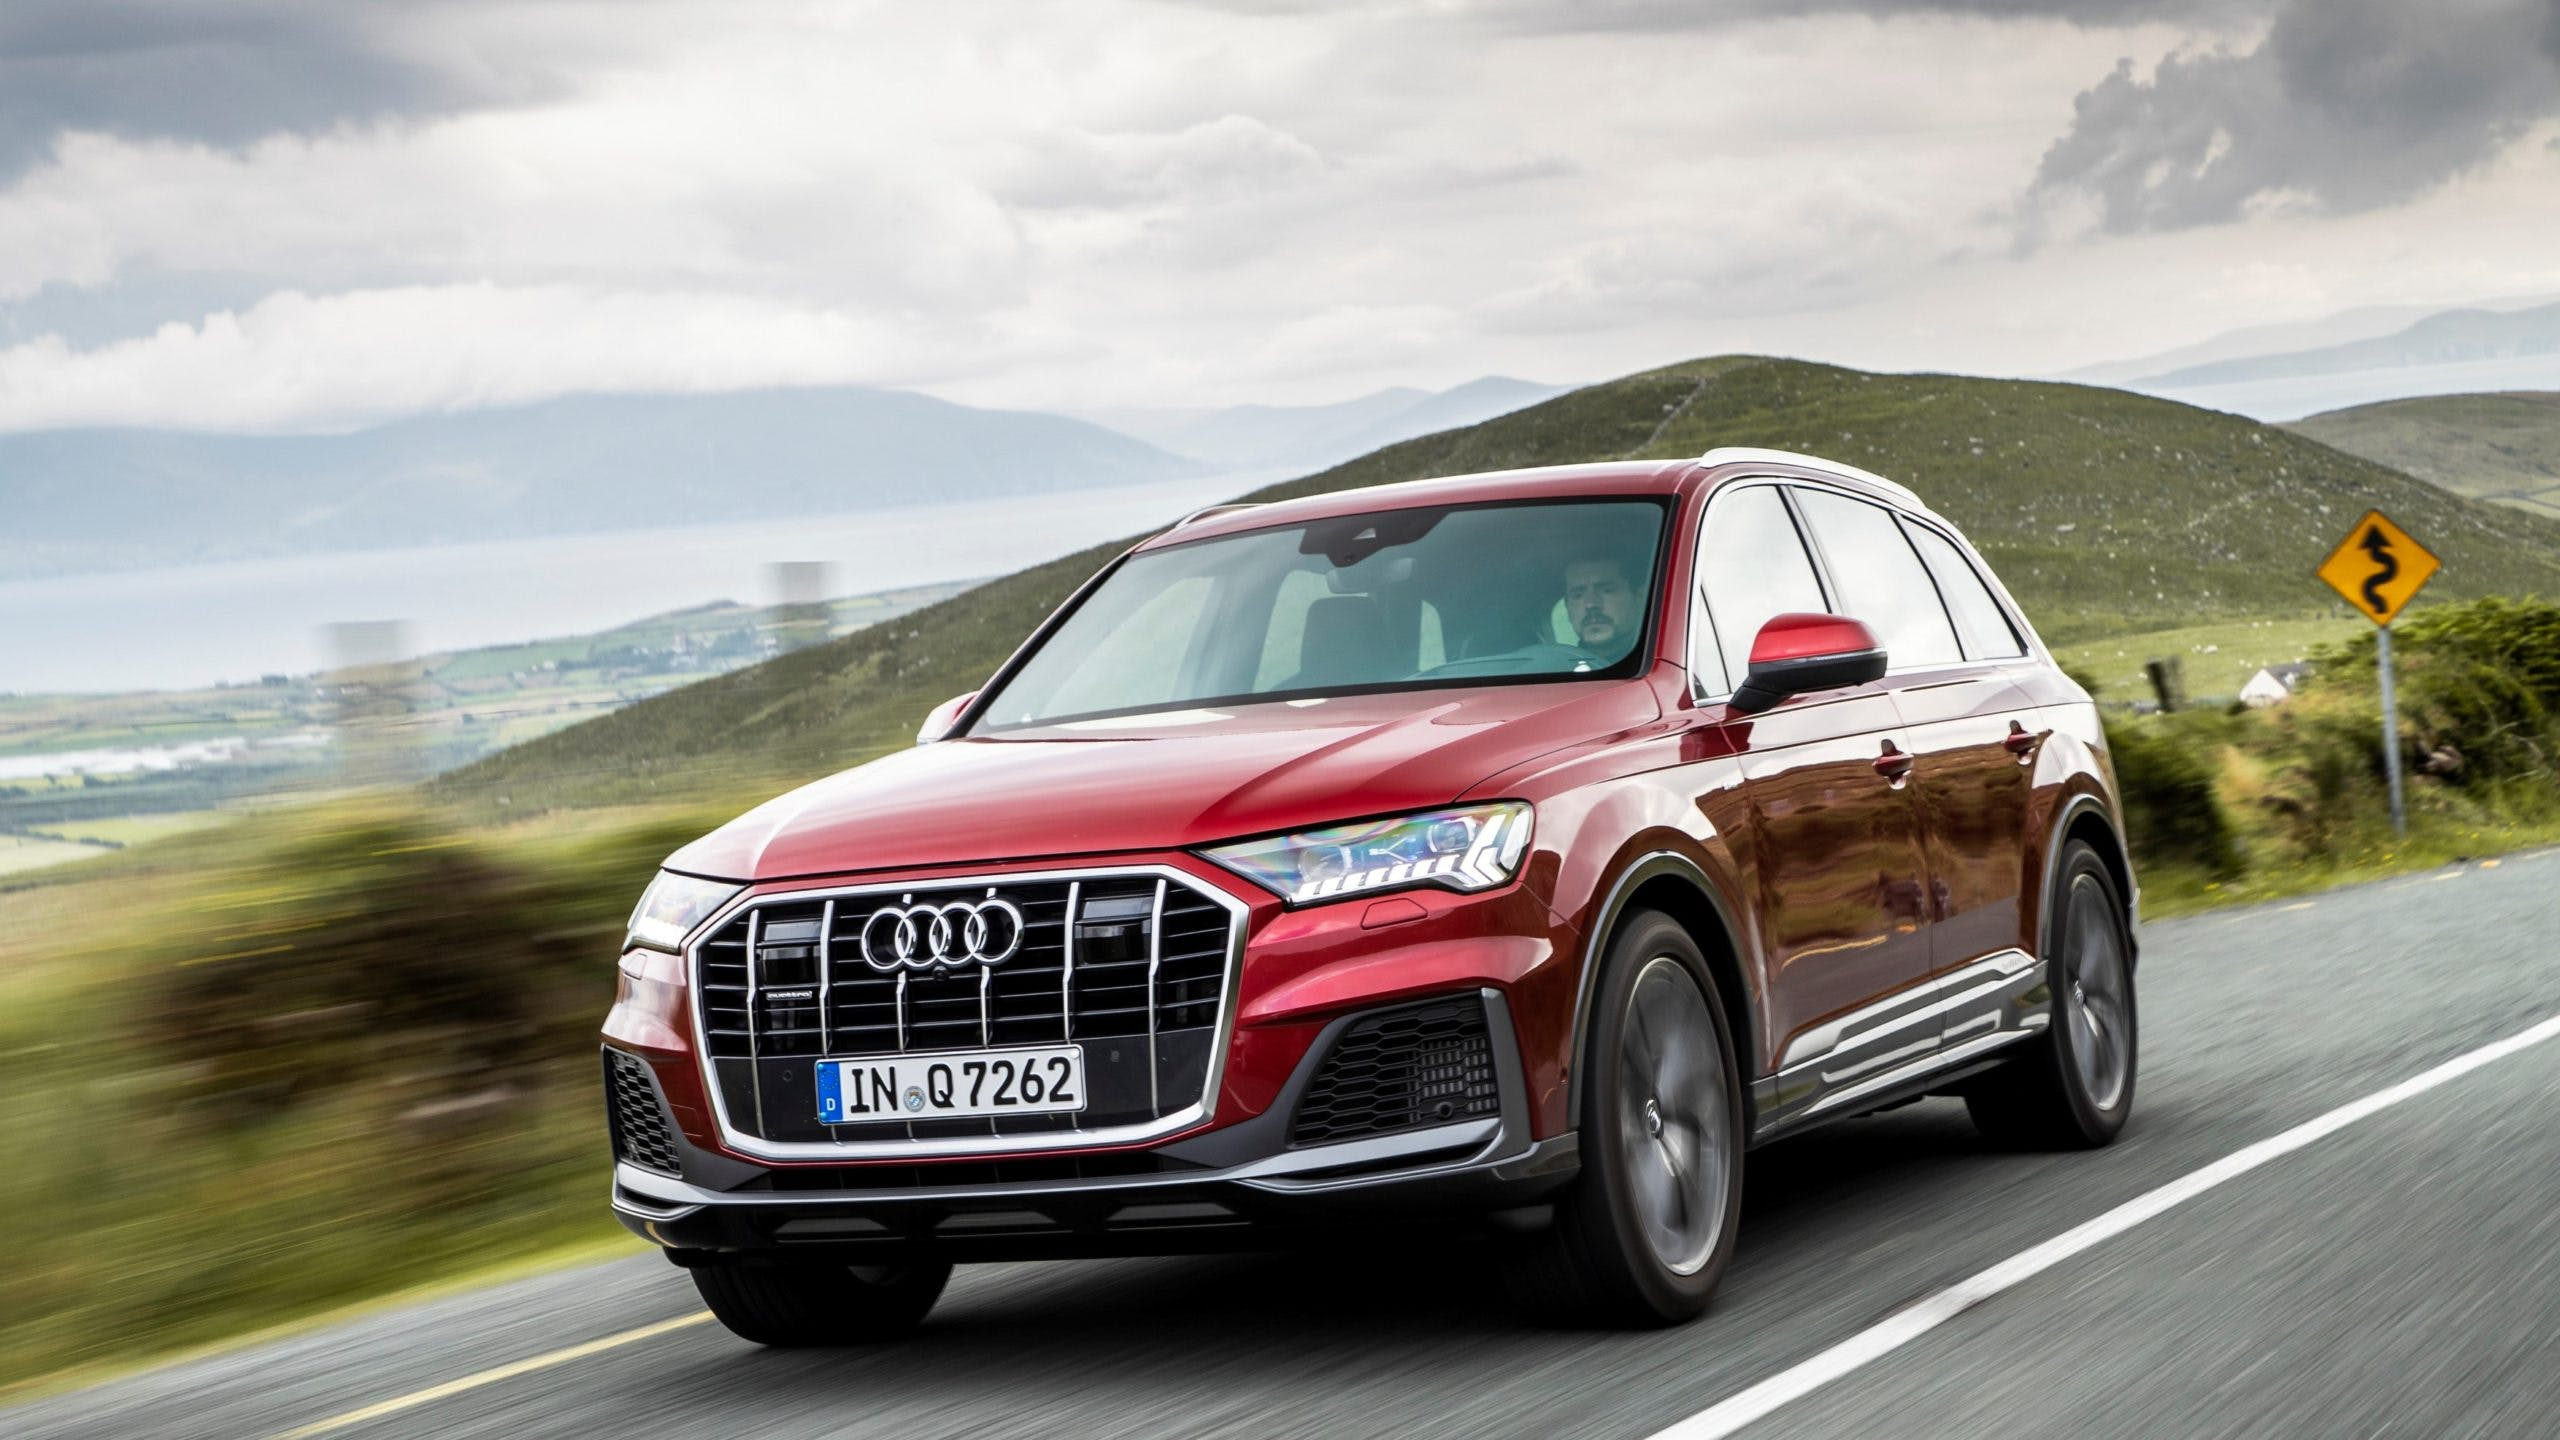 Tested: 2020 Audi Q7 Is a Premium Class Leader